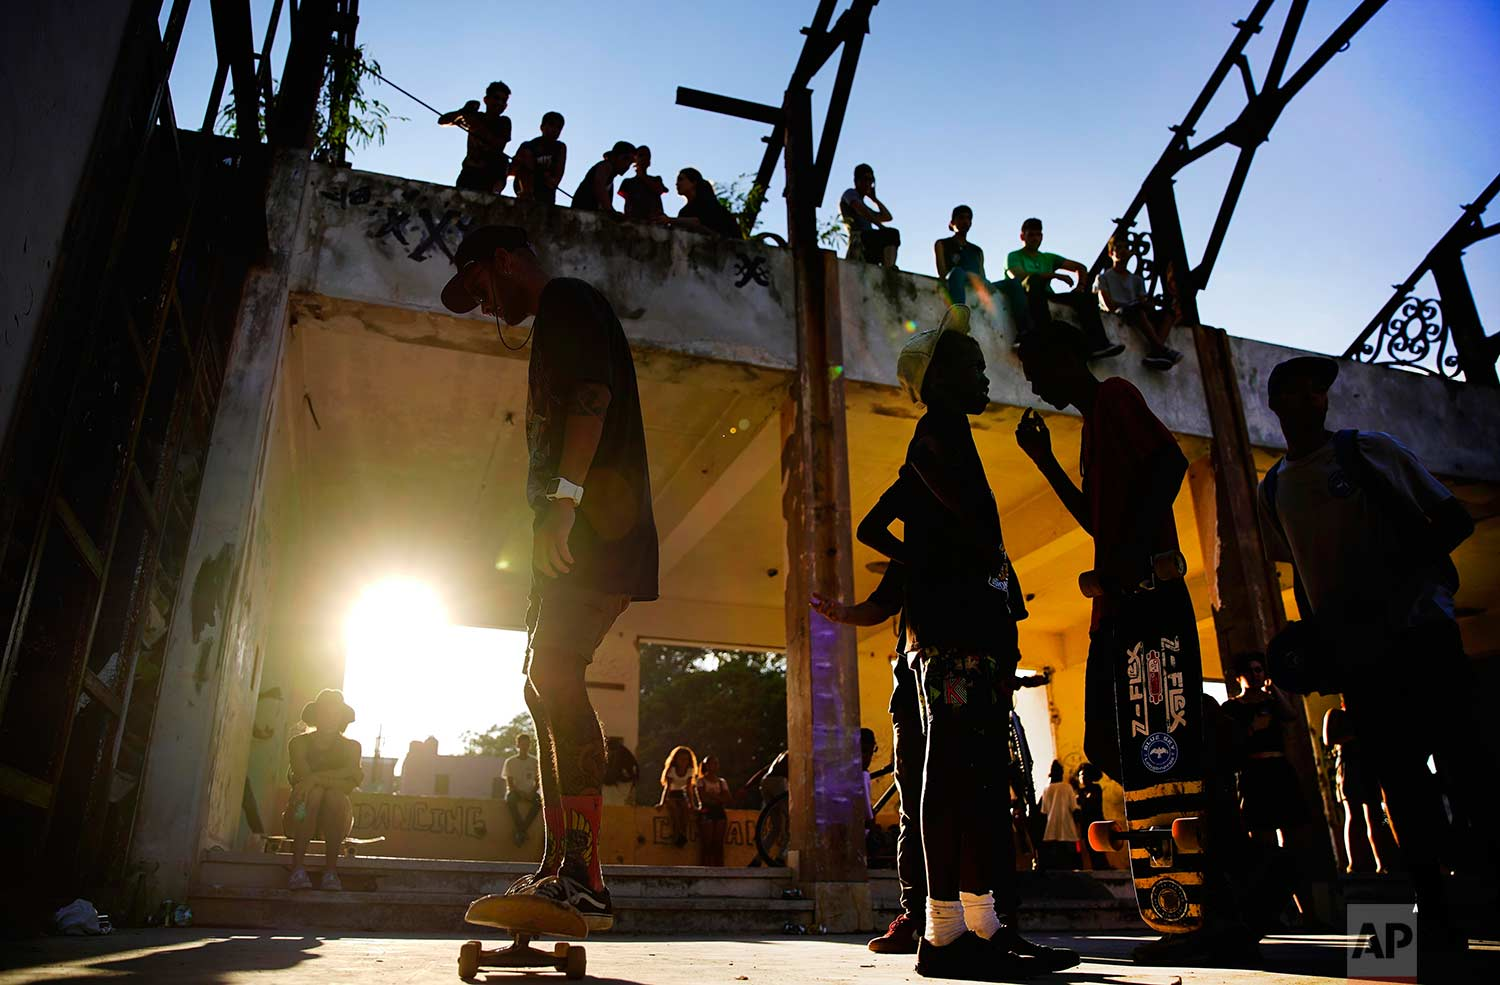 In this Jan. 11, 2018 photo, skaters gather for the inauguration of a new recreational space for skateboarders, created in an abandoned gym at the Educational complex Ciudad Libertad, a former military barracks that the late Fidel Castro turned into a school complex after the revolution in Havana, Cuba. (AP Photo/Ramon Espinosa)